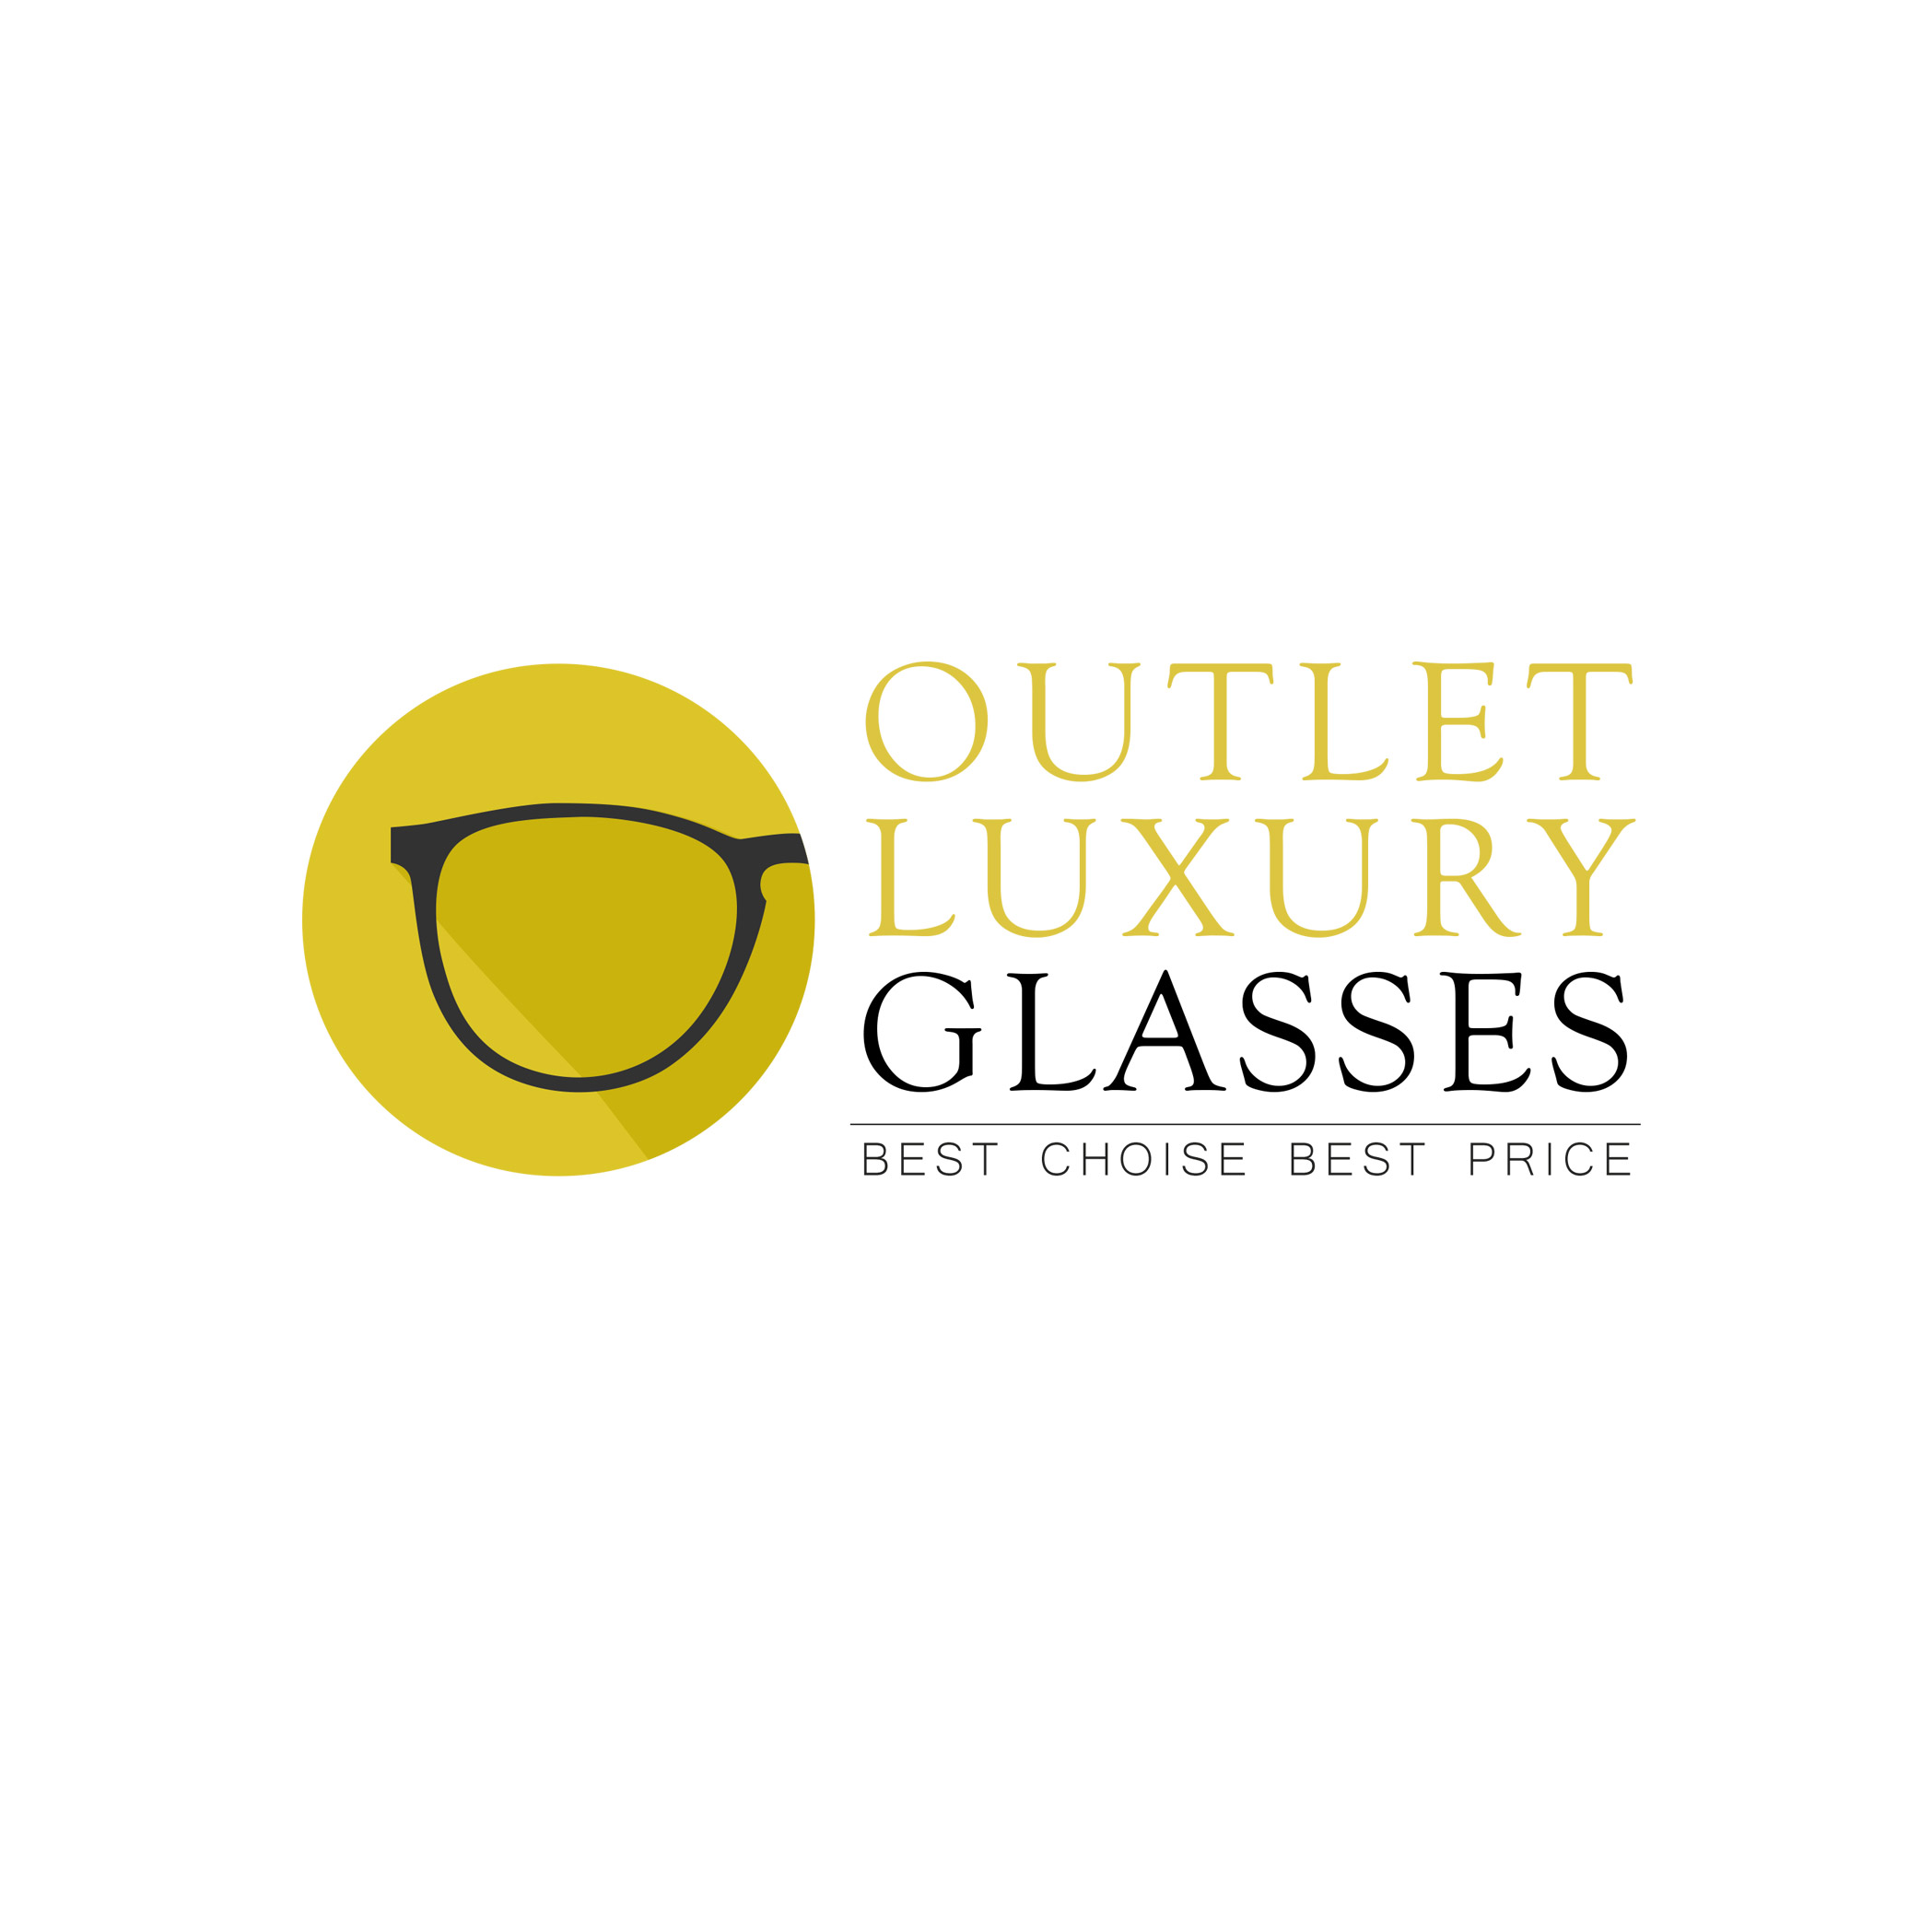 Proposta di logo per Outlet Luxury Glasses - Starbytes contest